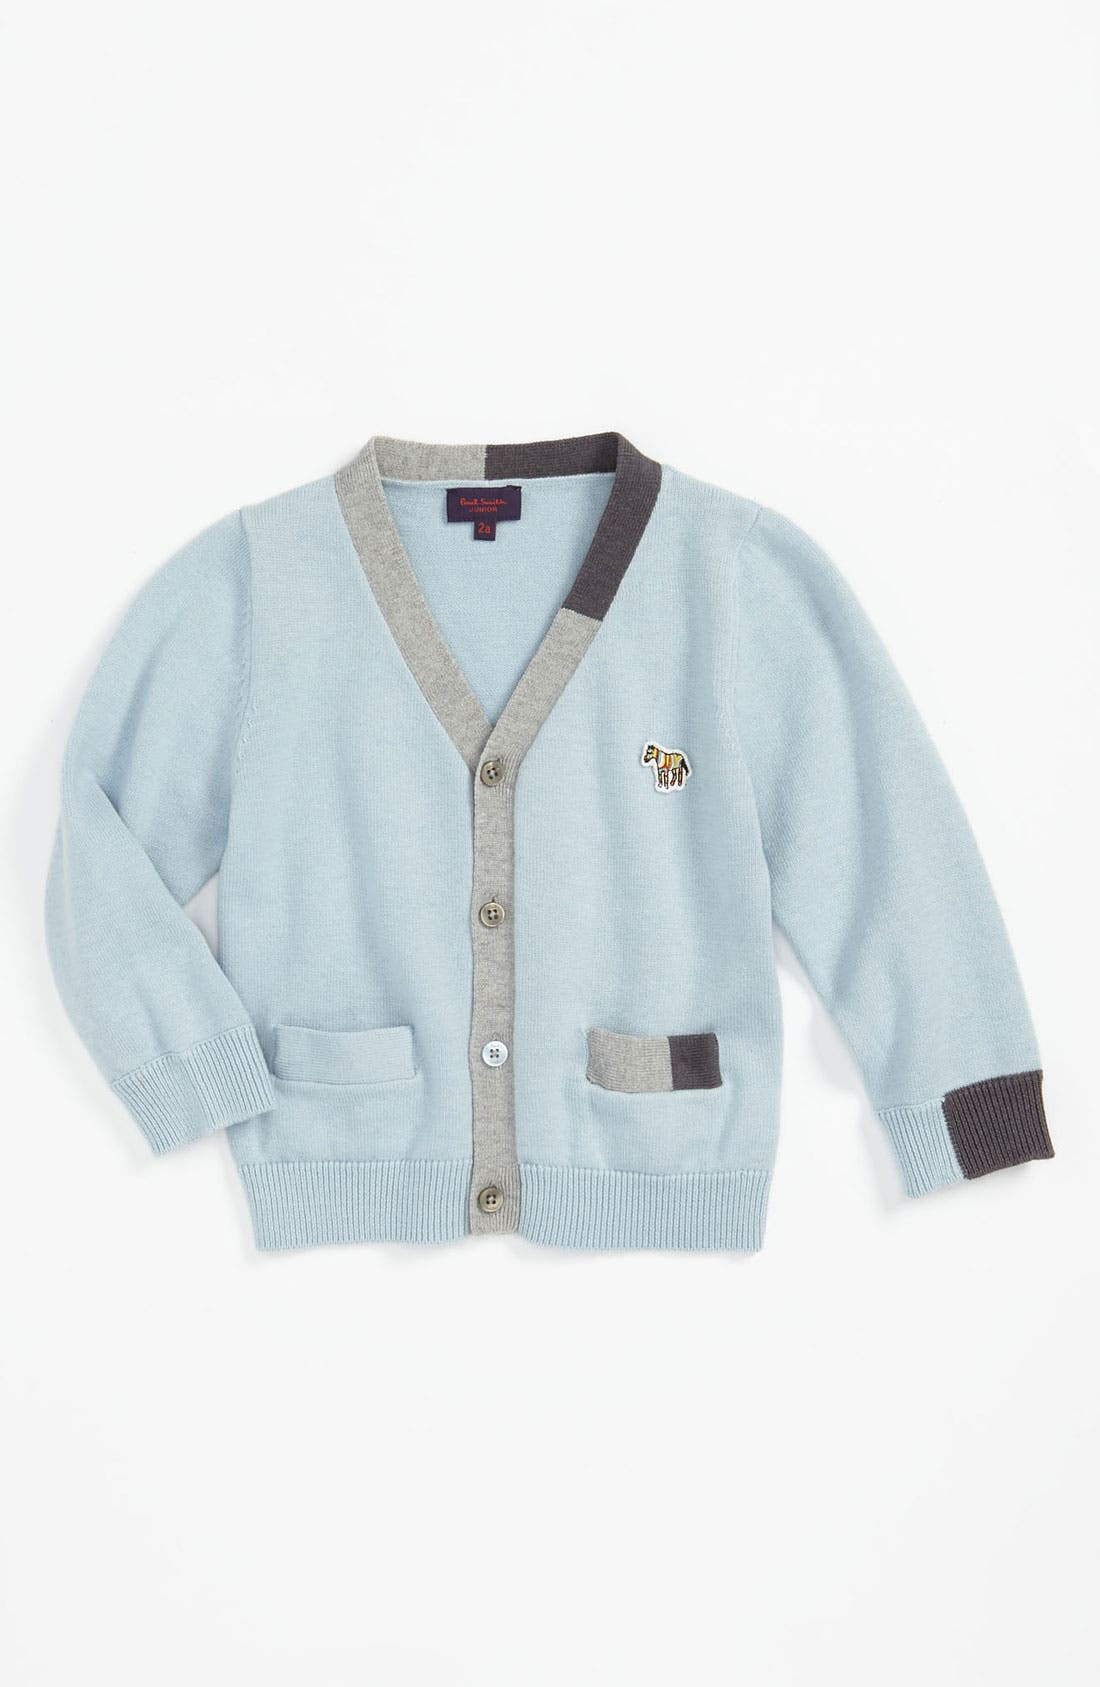 Alternate Image 1 Selected - Paul Smith Junior 'Colin' Cardigan (Infant)